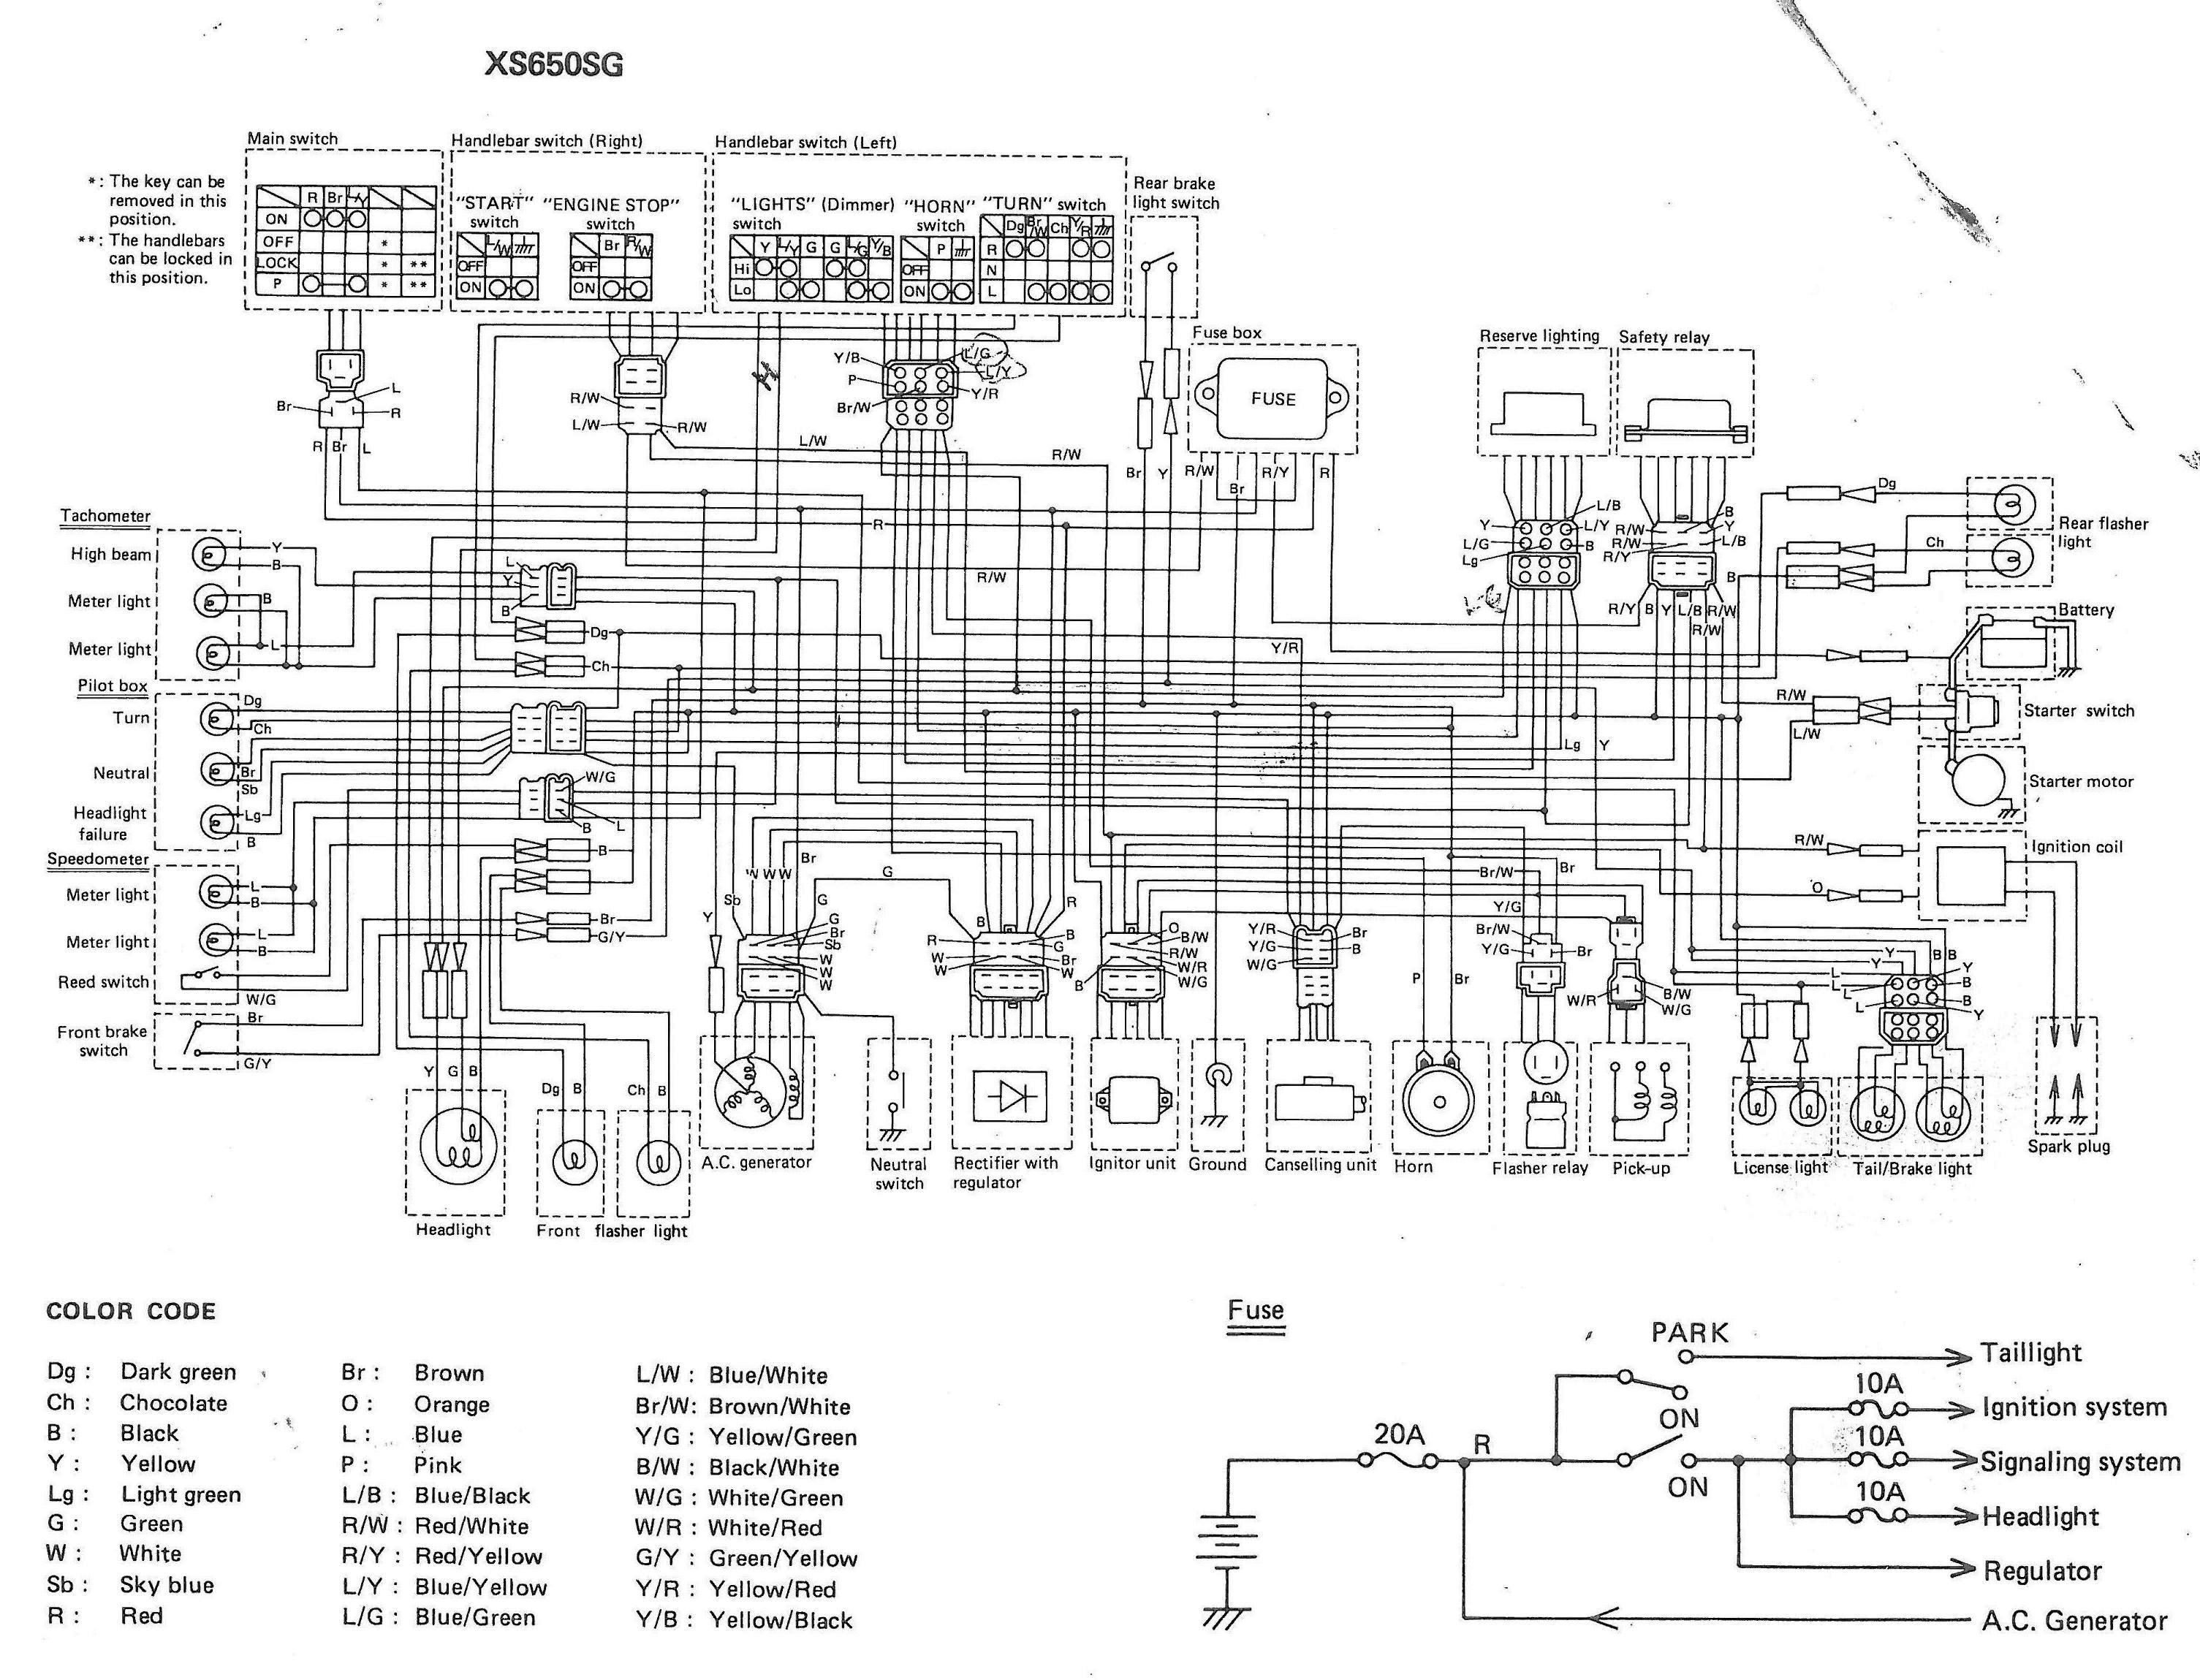 Yamaha Maxima Wiring Diagram Great Design Of 1981 Xj650 1985 Schematics Diagrams U2022 Rh Parntesis Co Maxim 650